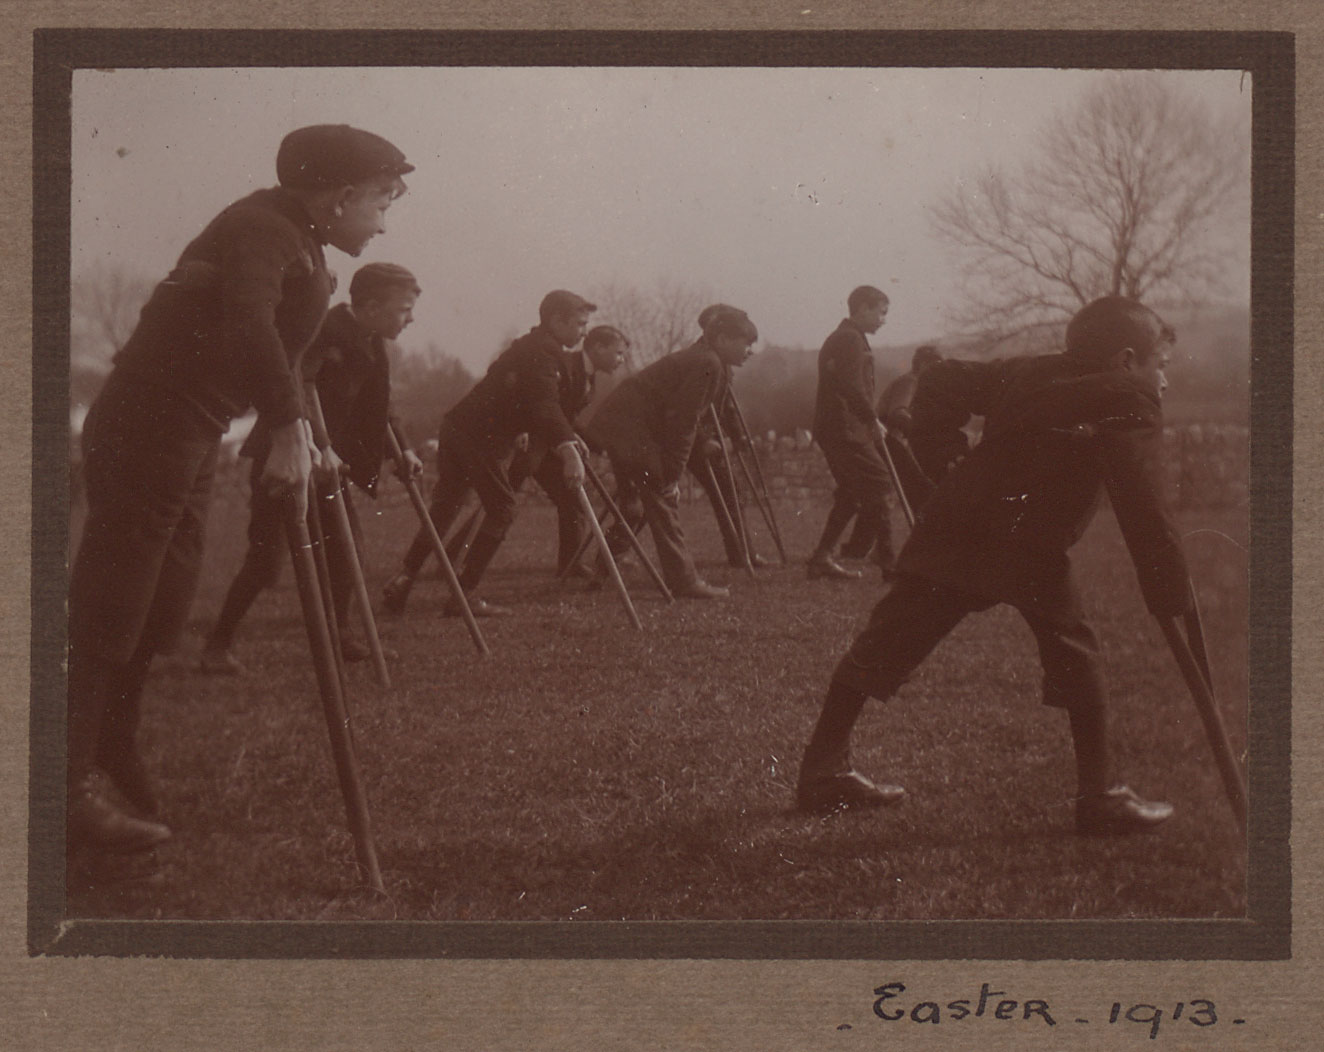 Boys with crutches stand in a line, perhaps at the start of a race